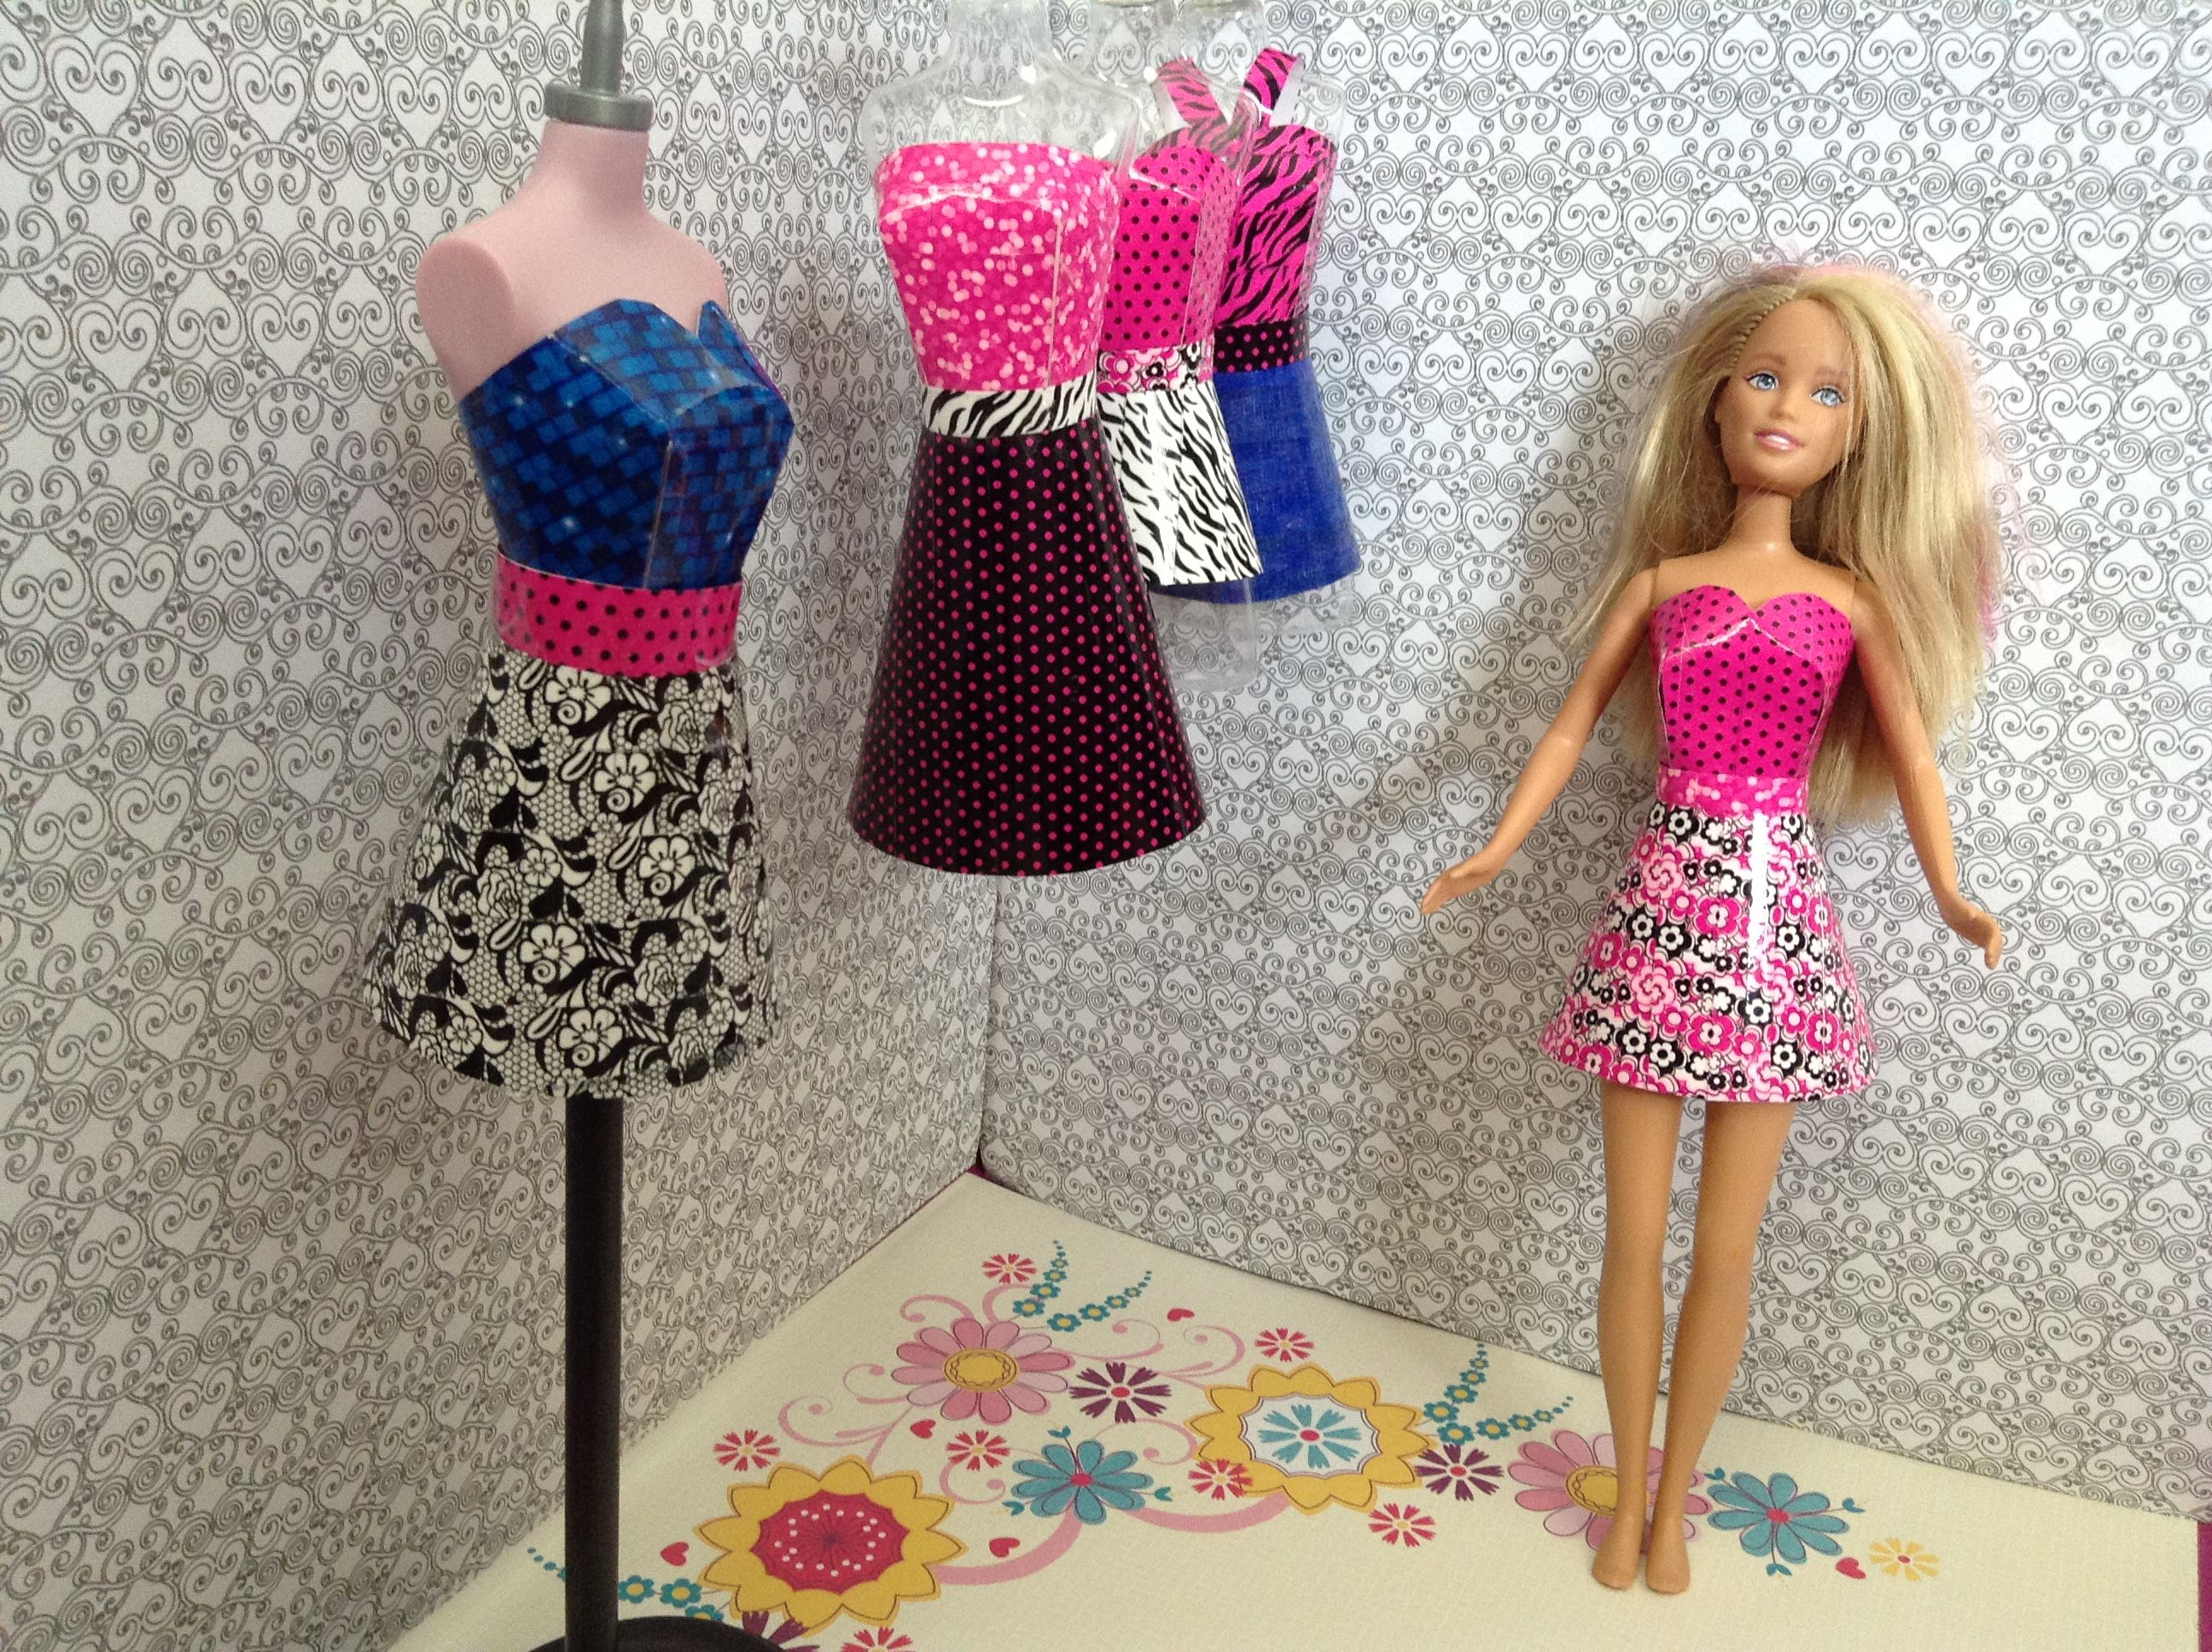 Homemade Barbie Dresses!!!  How to make Barbie dresses 1.Print or make a dress template. 2.Decorate any way your want.You can use cute tape,glitter,stickers,colored pencils,etc. 3.Cut the dress out using the template. 4.Use clear tape to tape the dress on a doll,manican,or a hanger. 5.Have fun playing with your new dress.